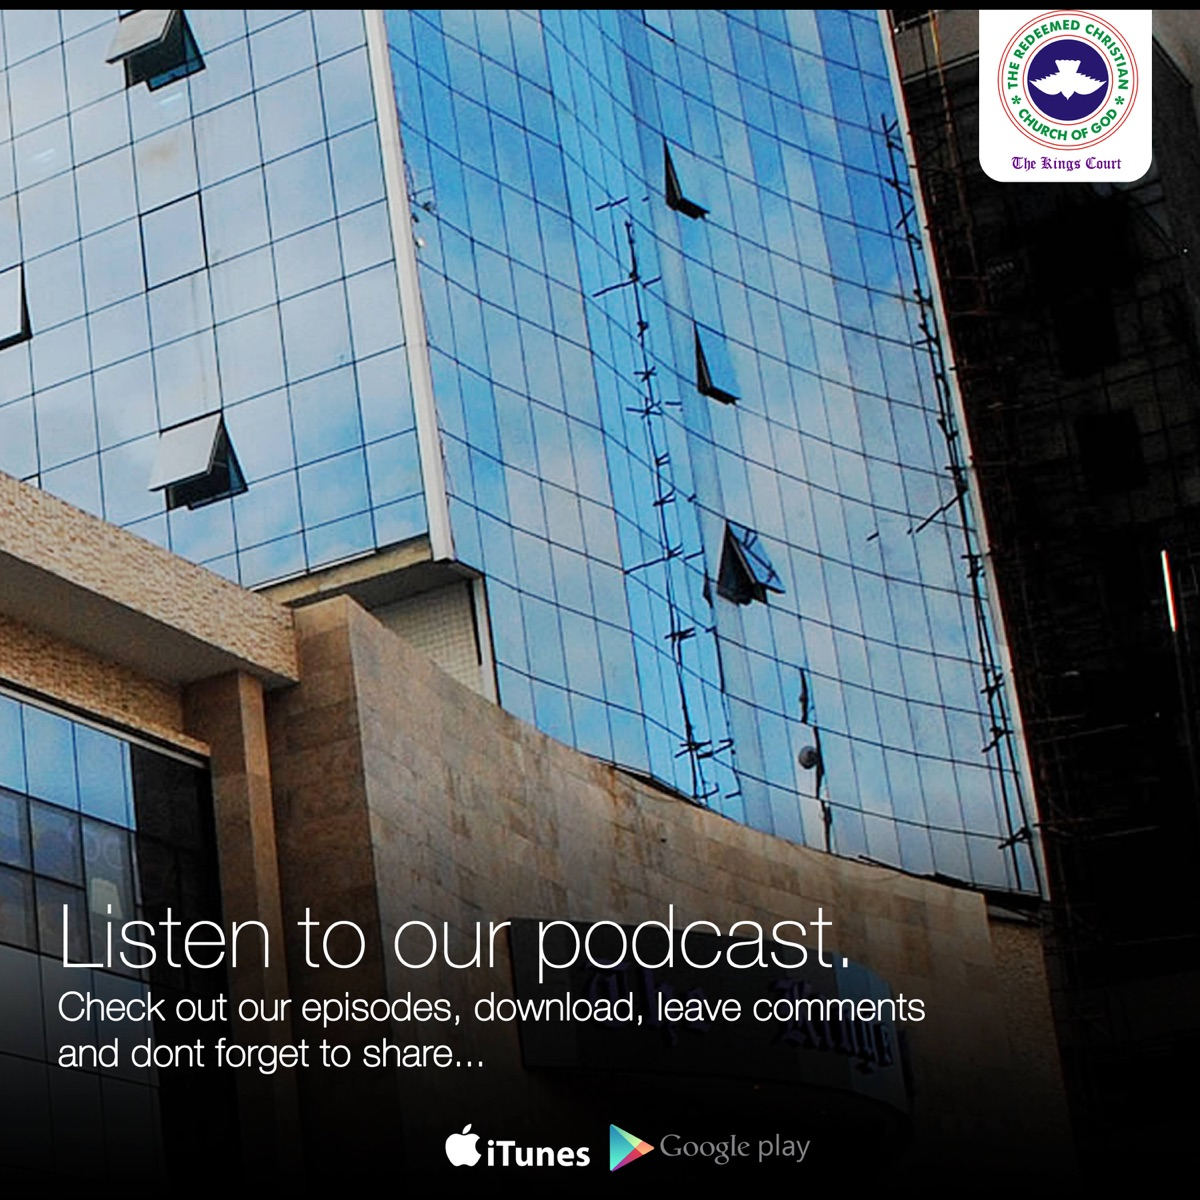 RCCG The King's Court Lagos Audio Podcast